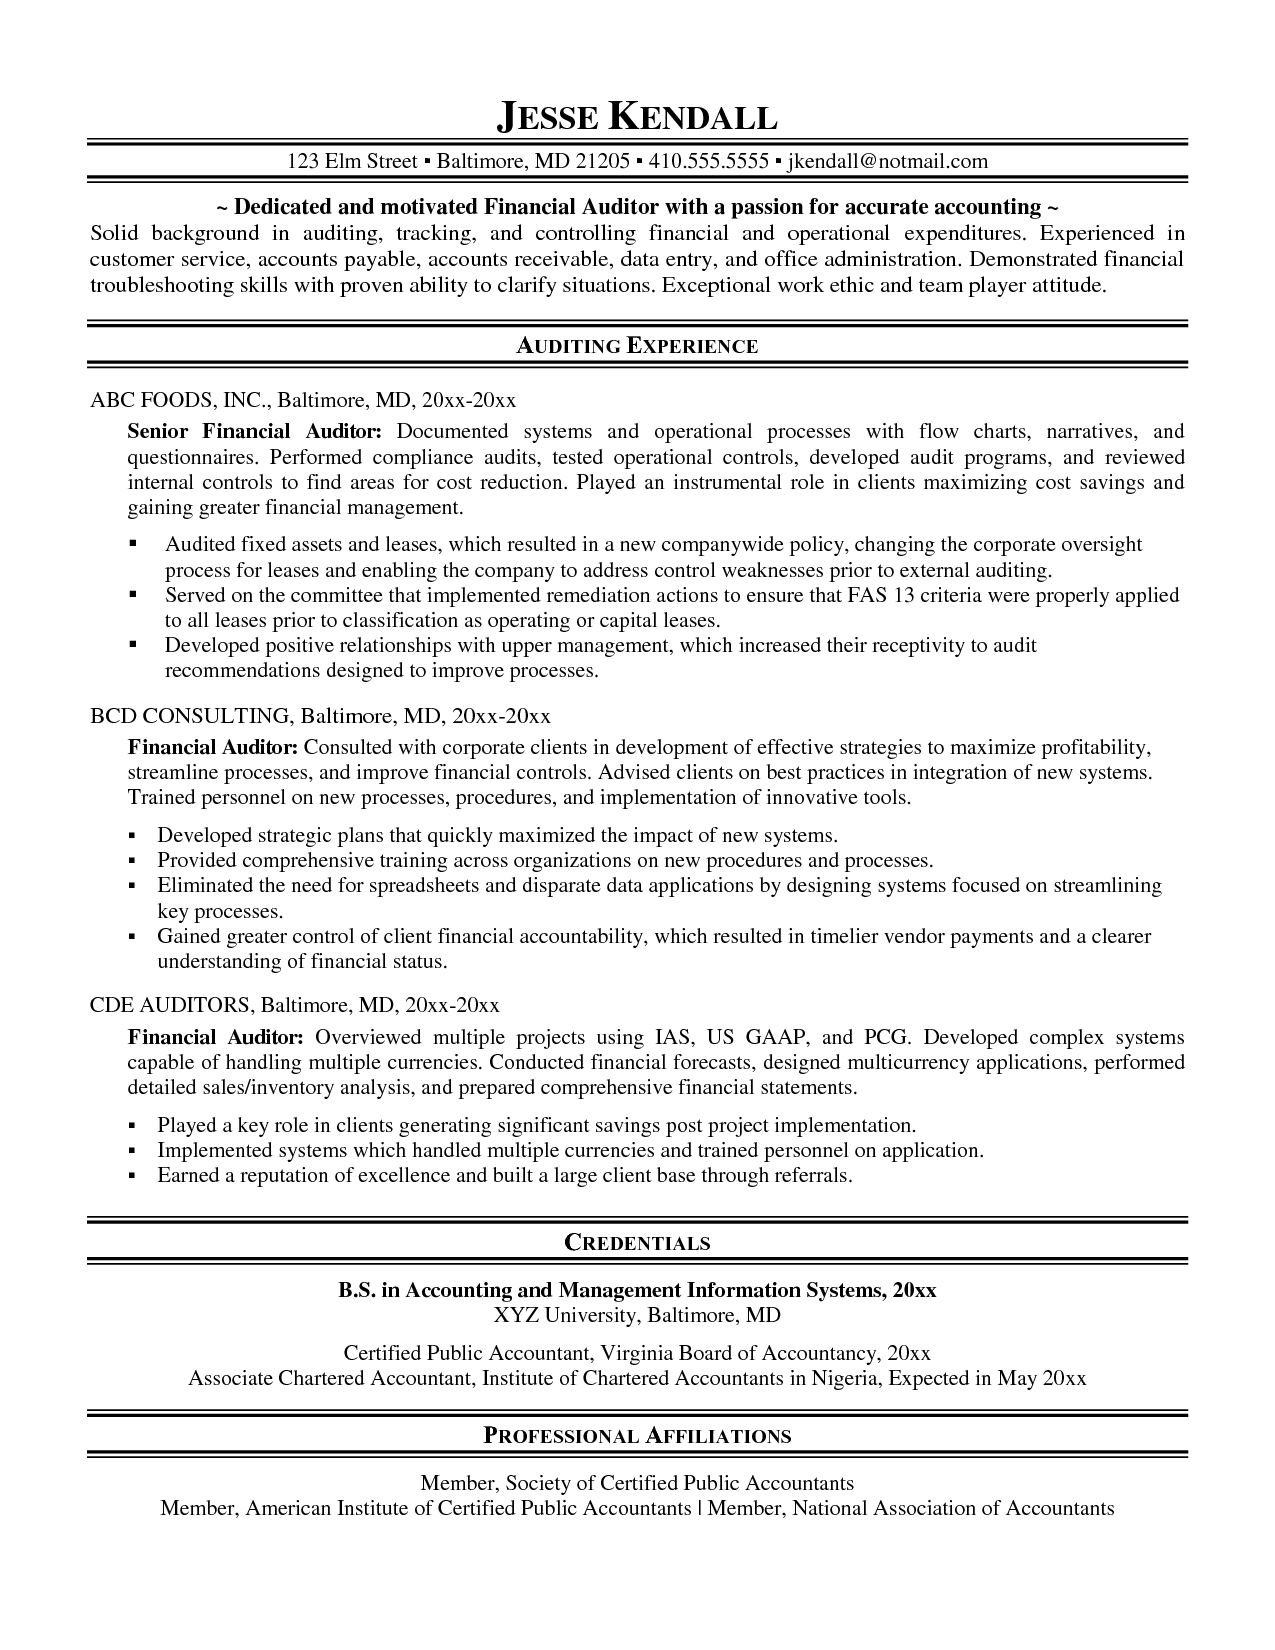 Internal Audit Director Resume Awesome Collection Of Internal Audit Resume Objectives